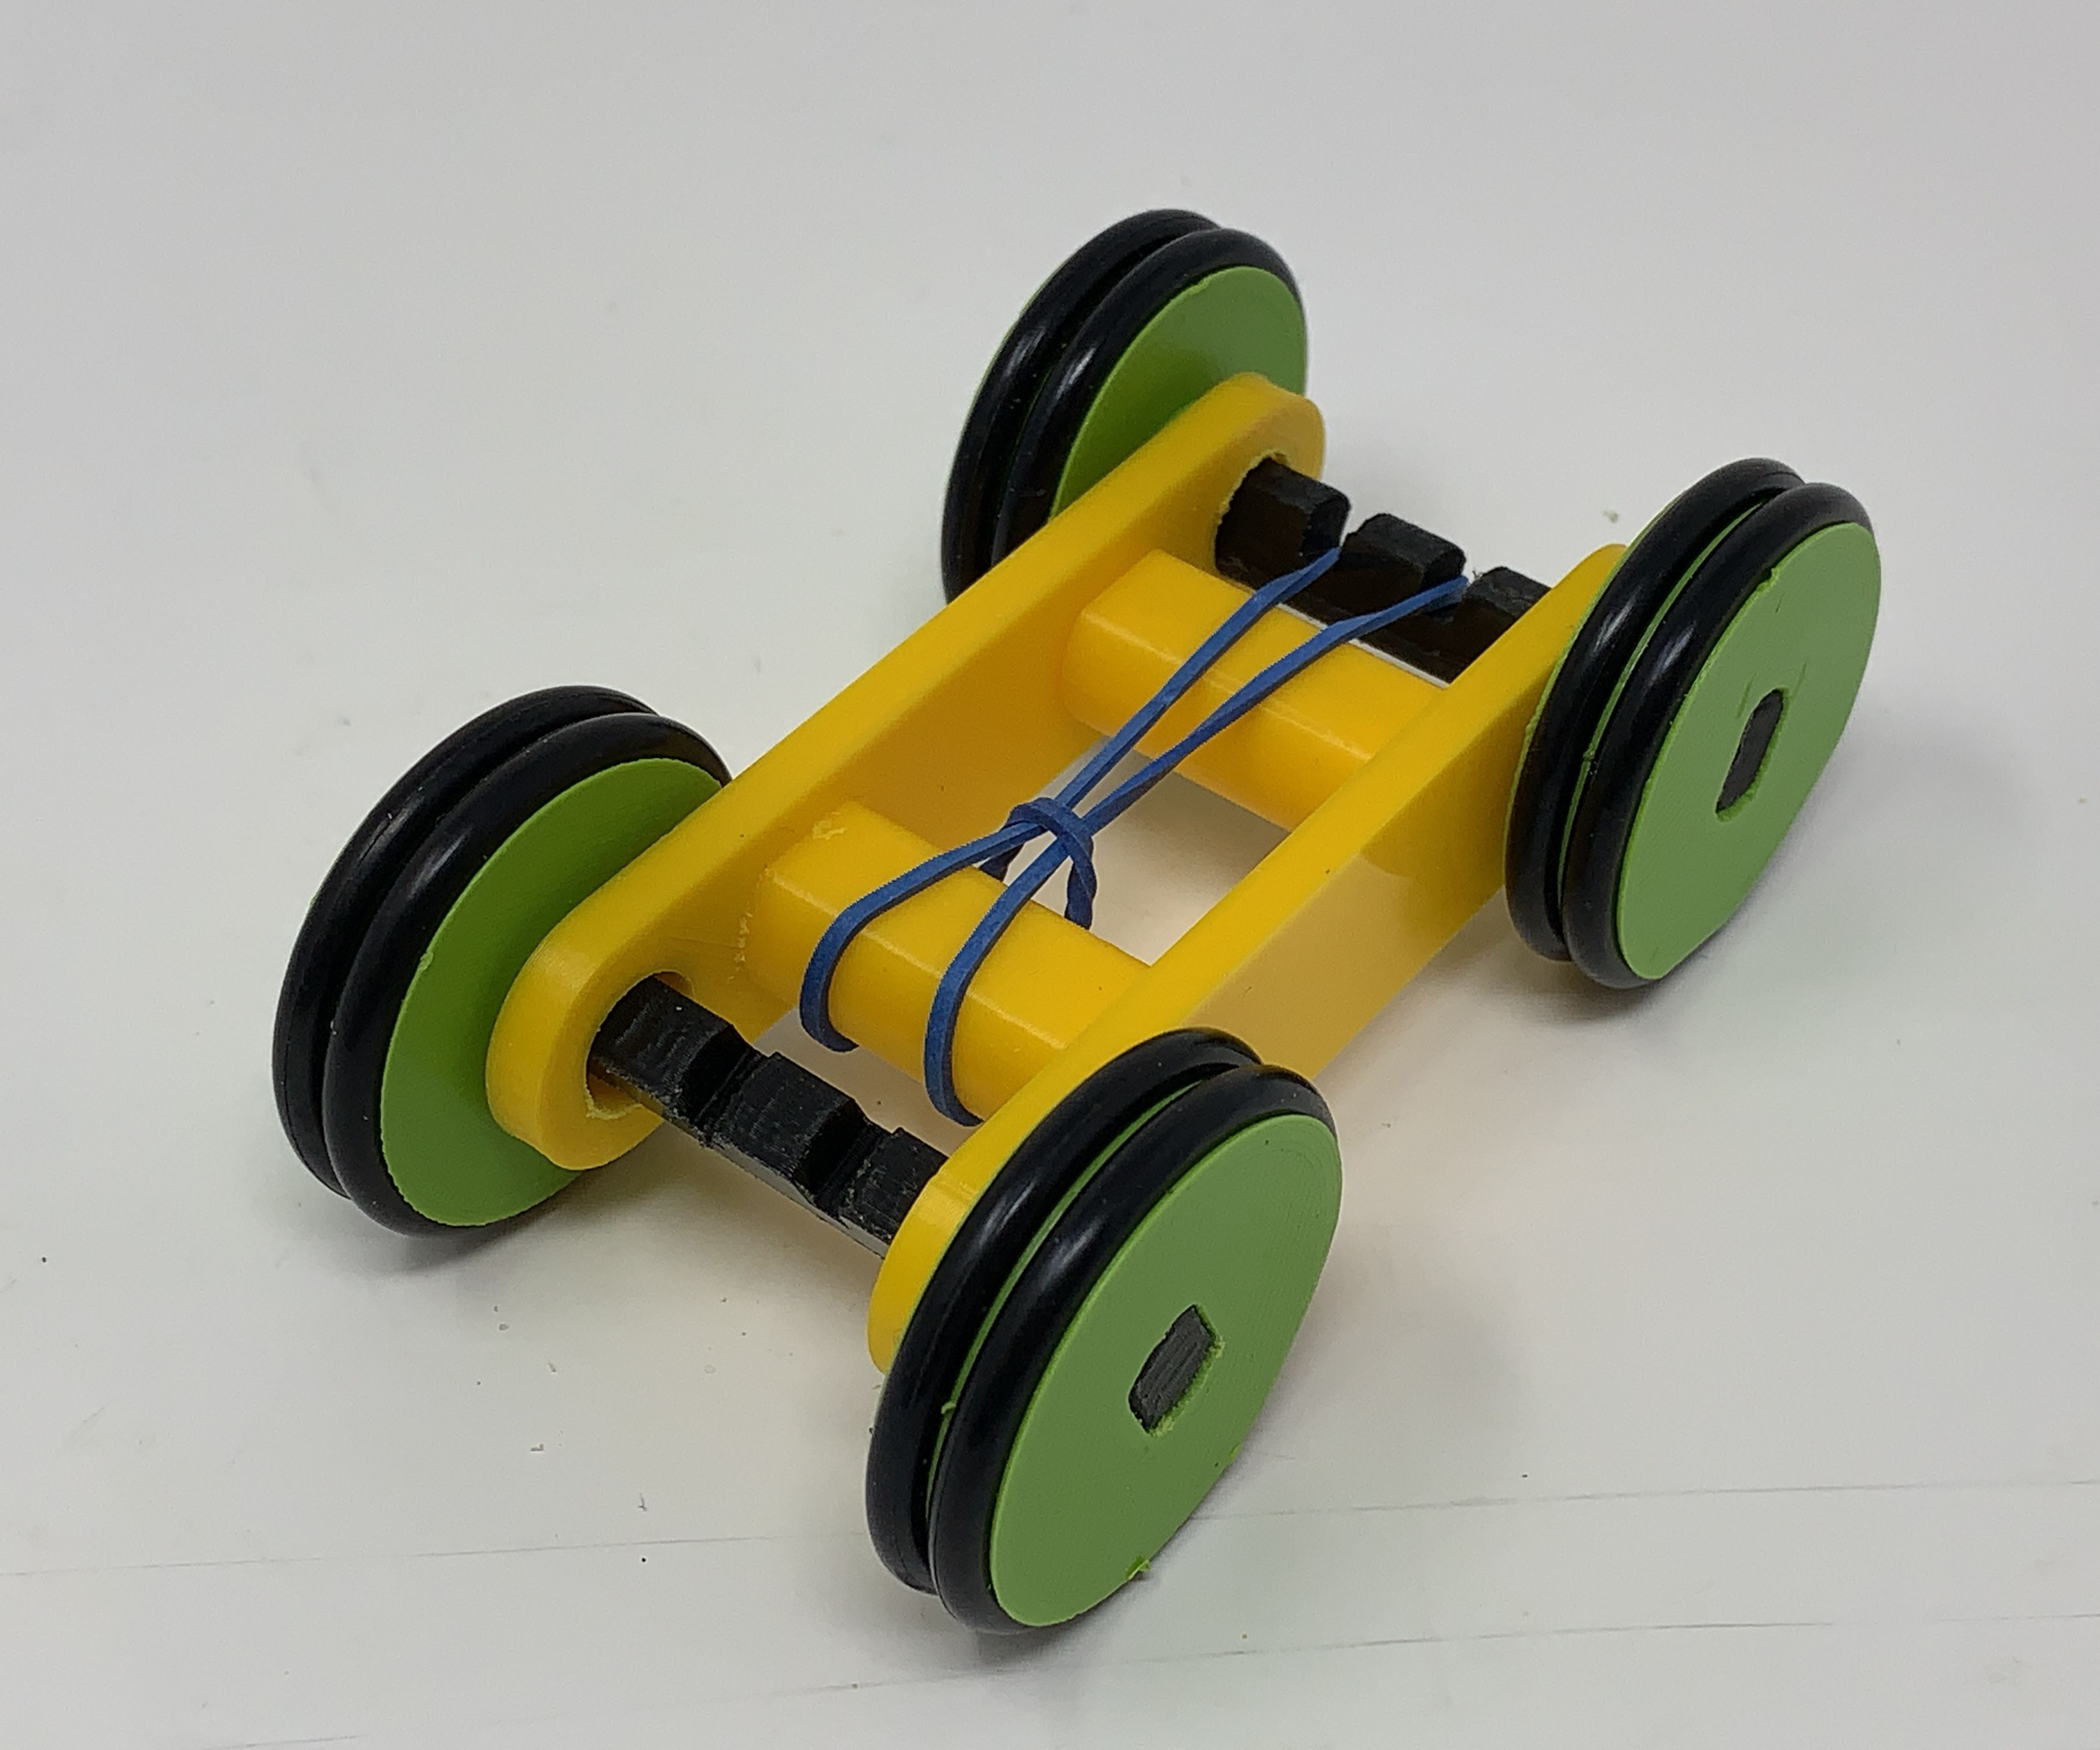 Design a simple 3D printed rubber band car with Autodesk